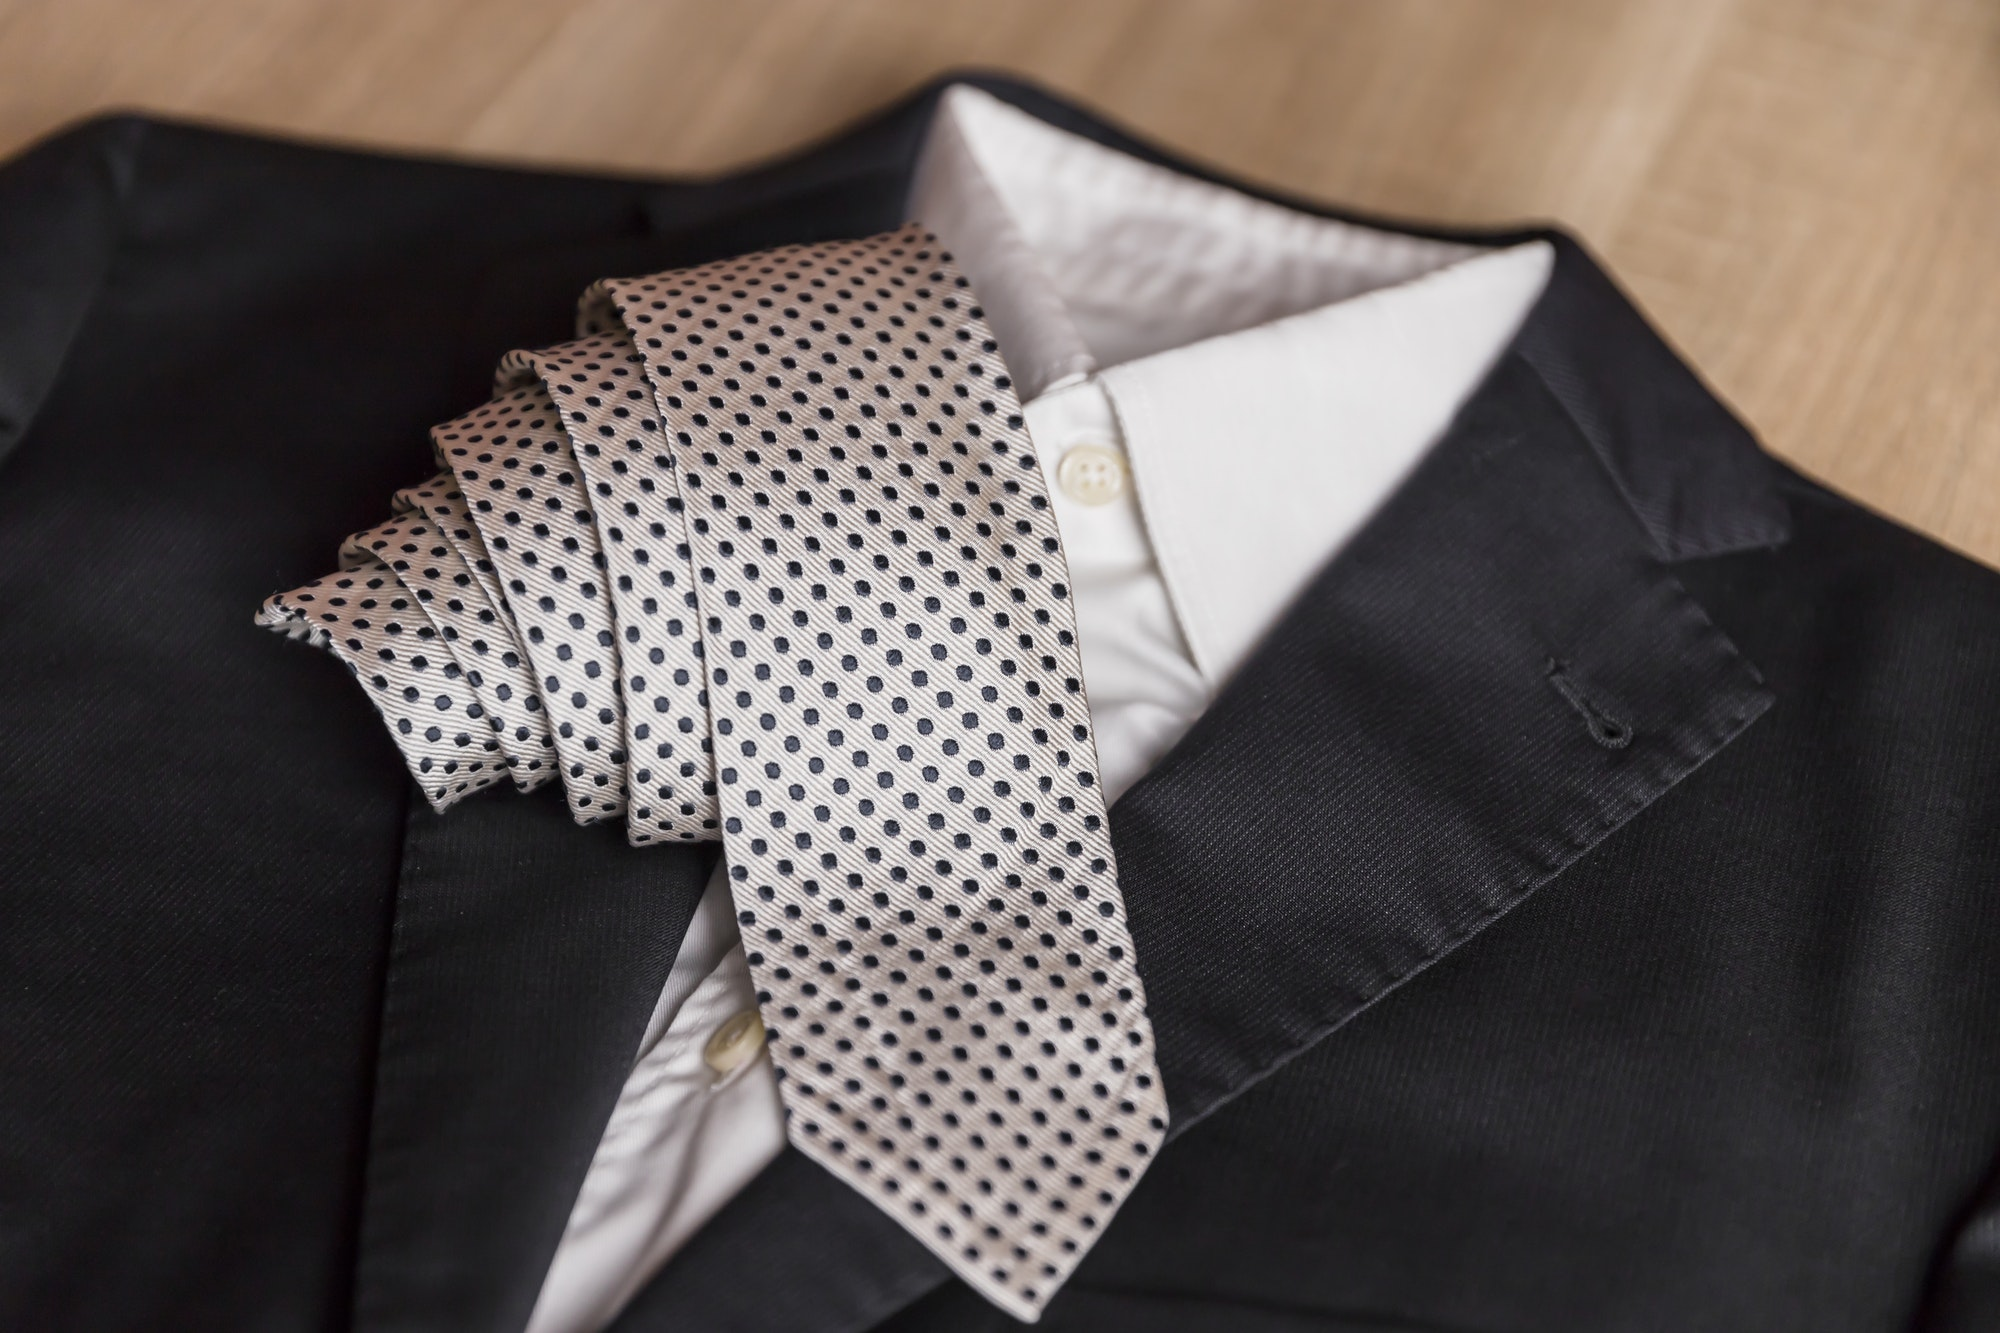 Jacket and tie detail. concept of Italian tailoring. Quality, style, made in Italy.